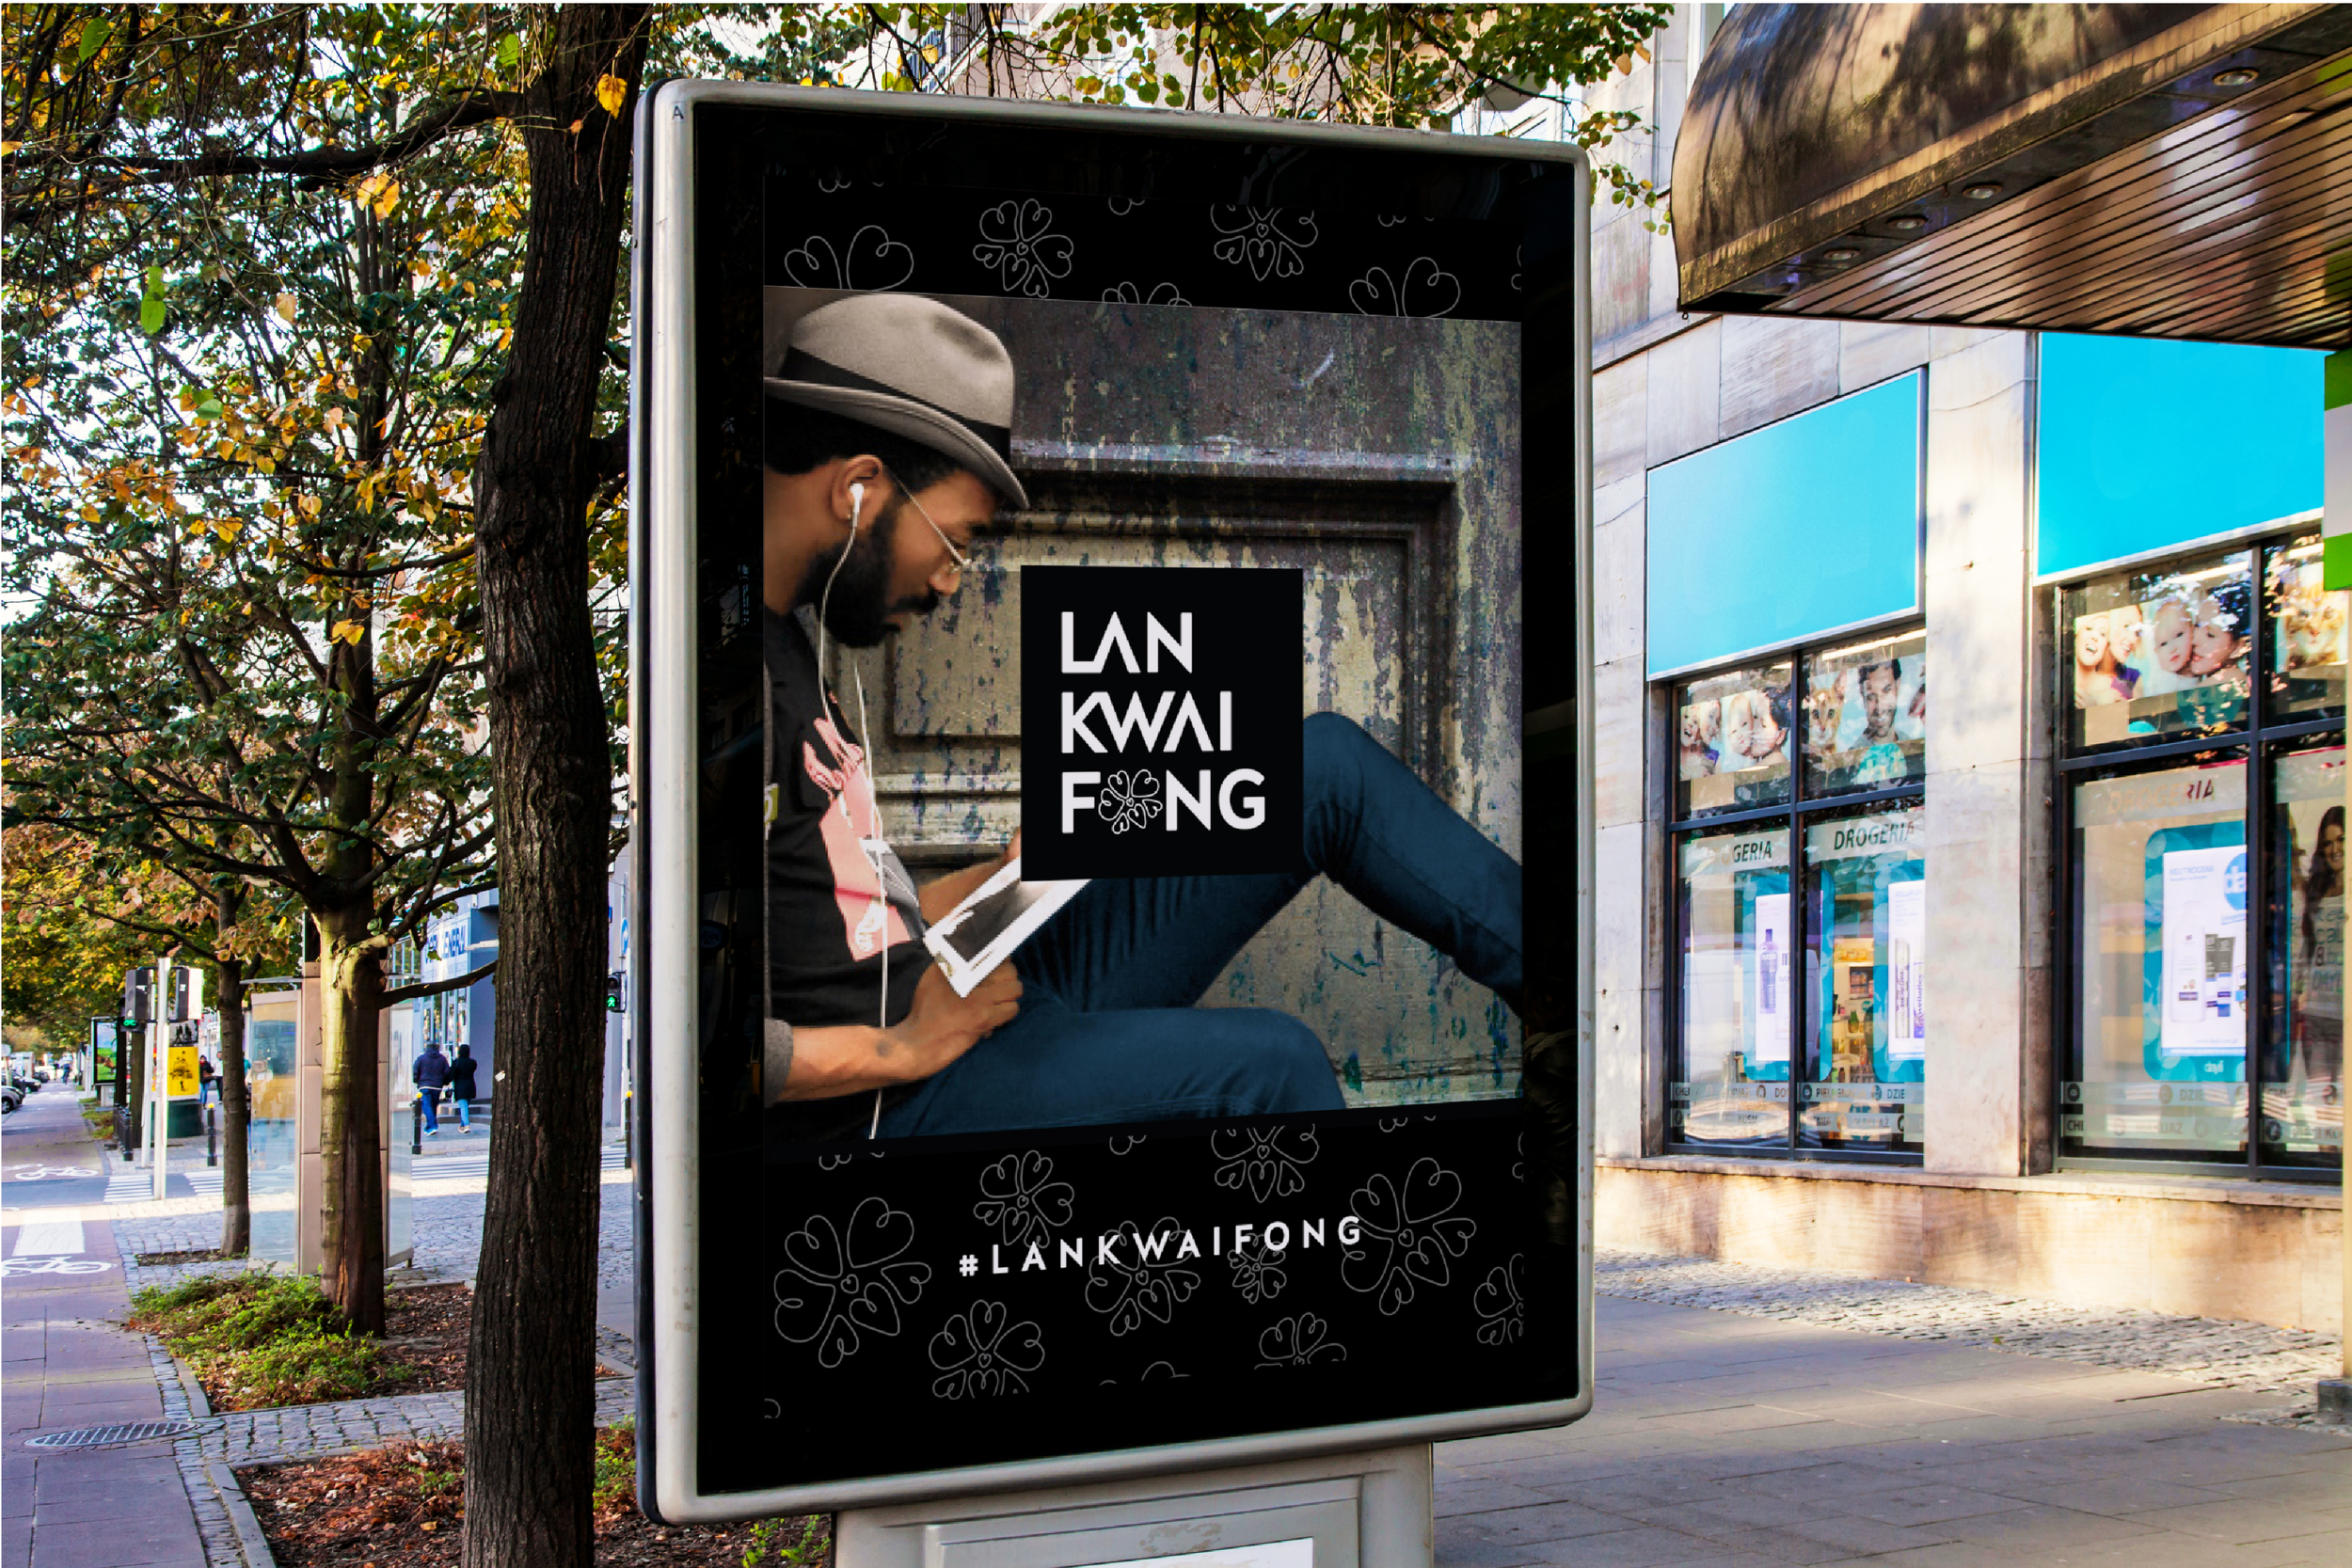 LKF's outdoor ads show lifestyle, nightlife and dining through the consumer's perspective;content from instagram, #LanKwaiFong